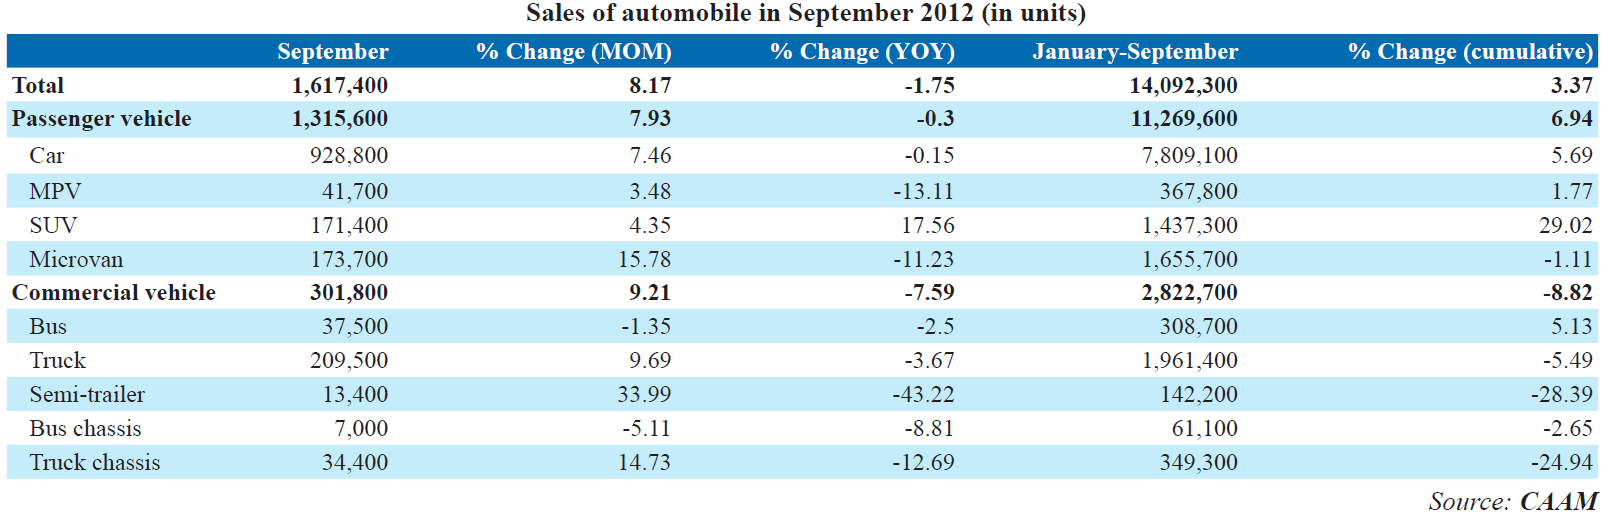 2. Automotive Market China May 2012: by CAAM (September 2012): Management Summary: Goldener September mit negativem Wachstum von 1,75% YoY;